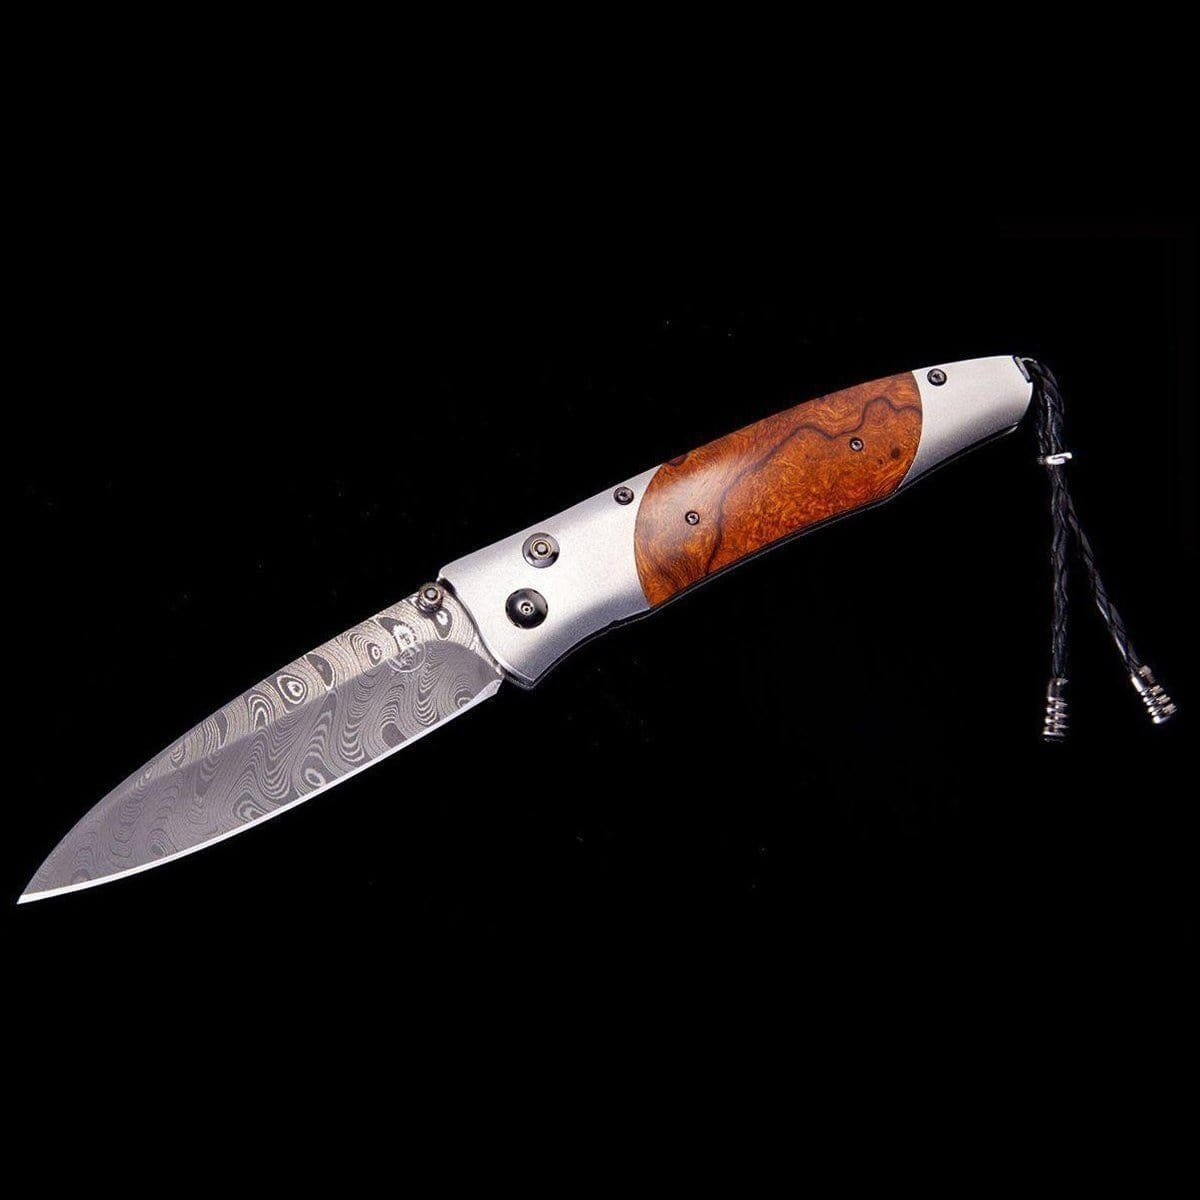 Gentac Outback Limited Edition Knife - B30 OUTBACK-William Henry-Renee Taylor Gallery